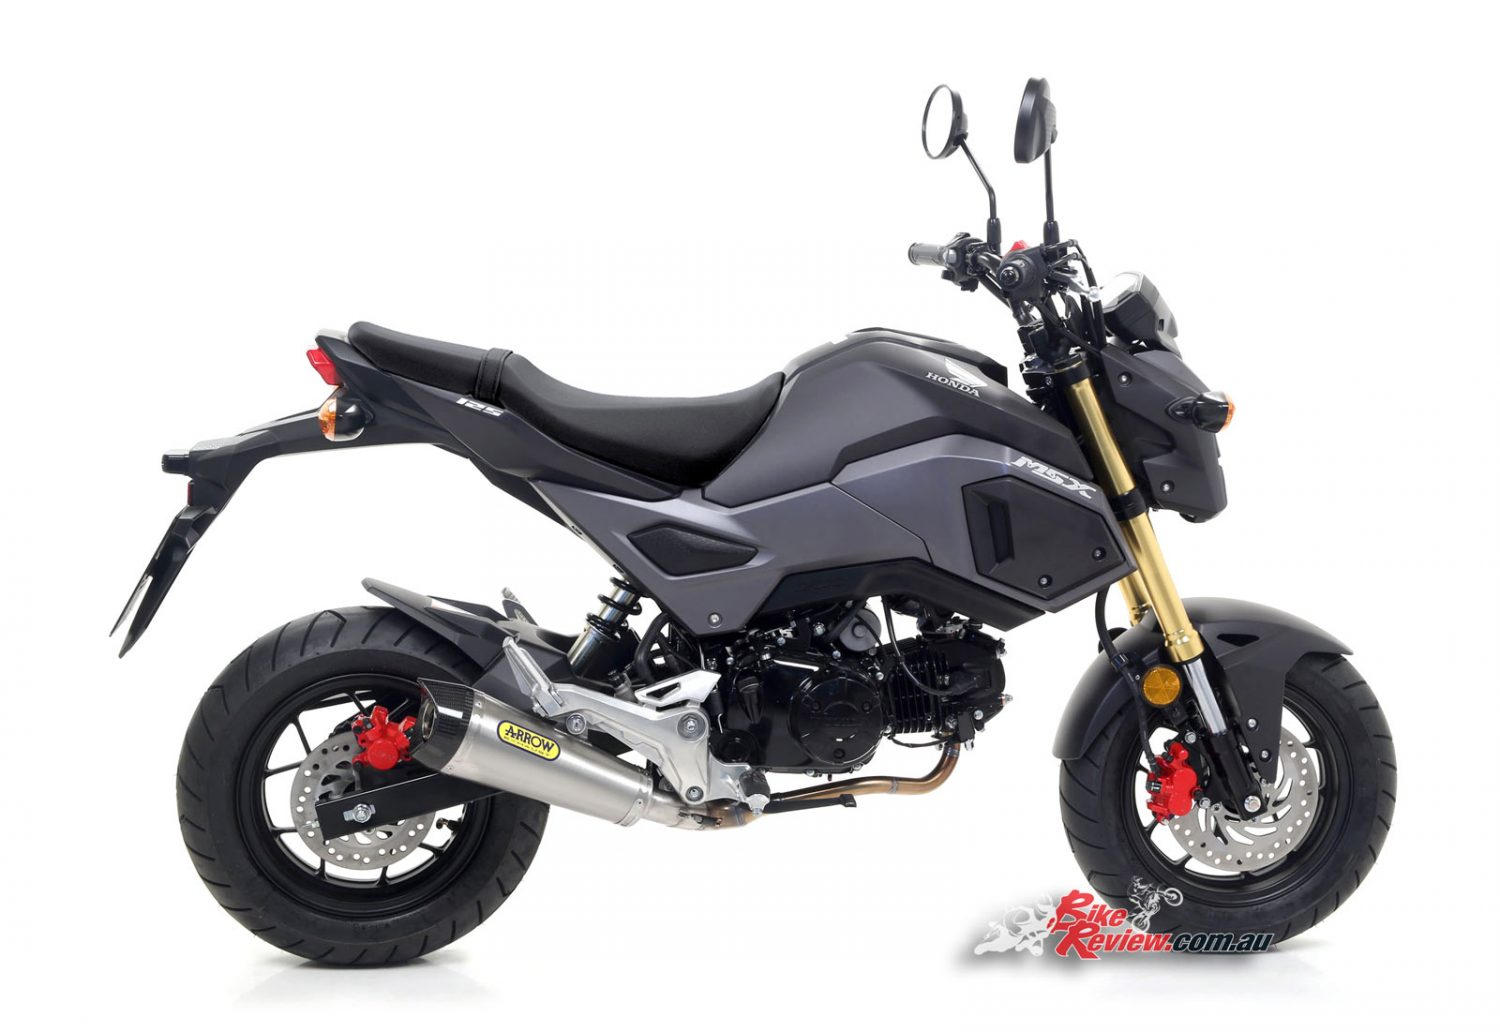 new product full arrow exhaust for honda grom bike review. Black Bedroom Furniture Sets. Home Design Ideas